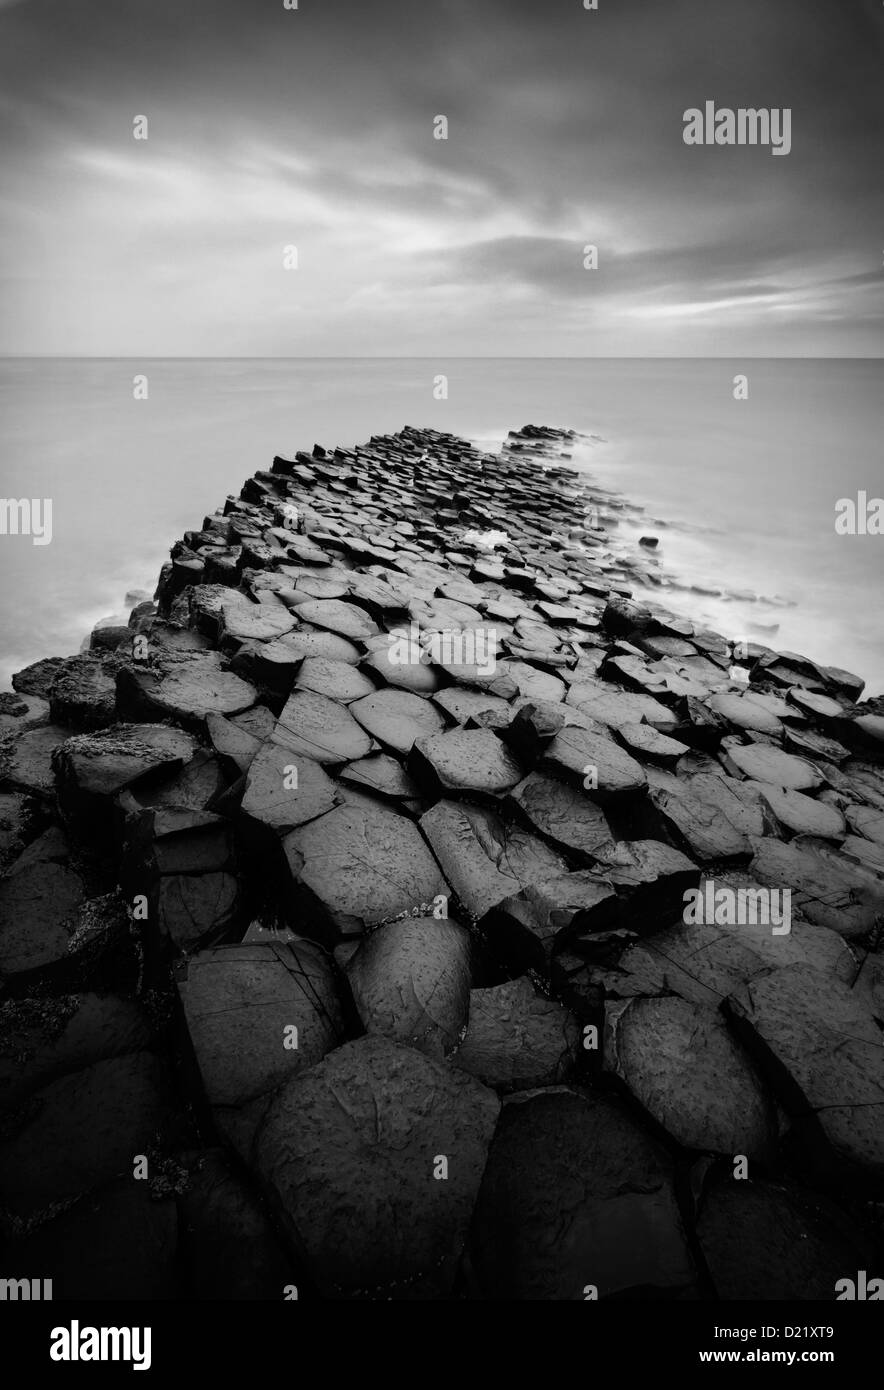 Black & white long exposure over the rocks and sea at the famous Giant's Causeway in Northern Ireland - Stock Image